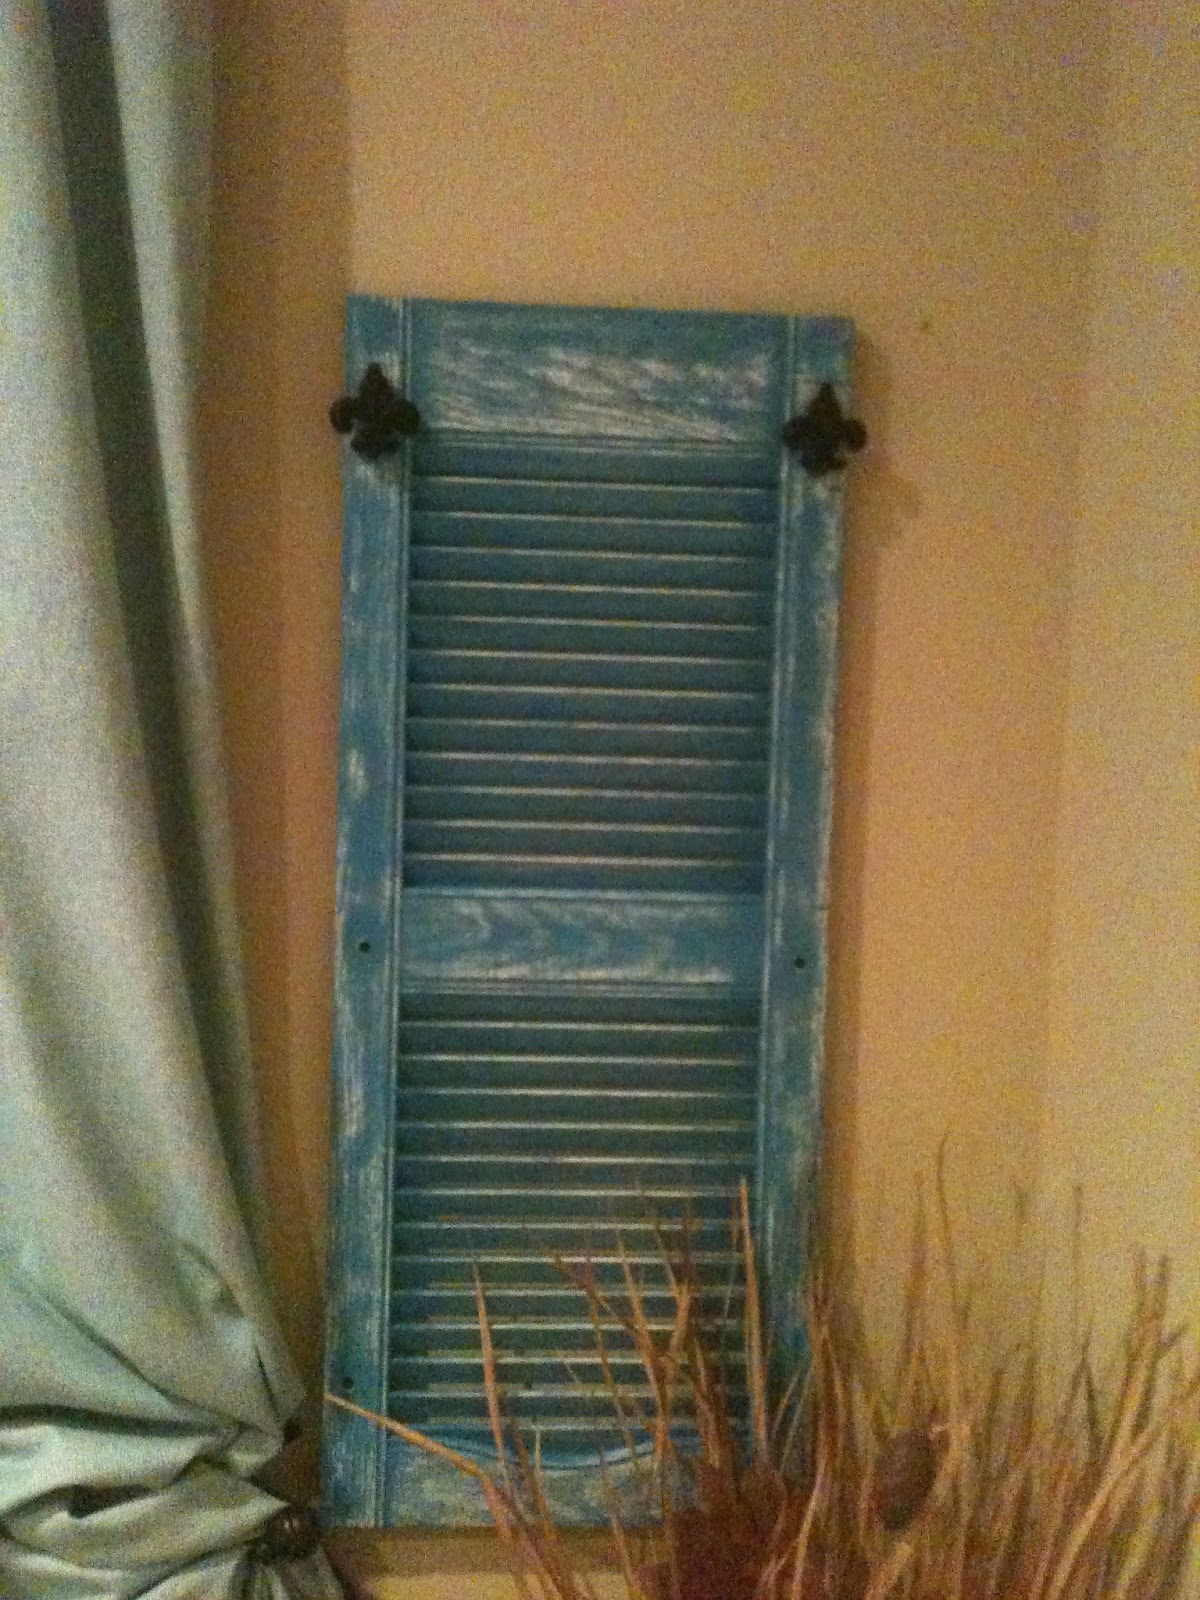 Furniture By Mk Designs Shutters Used As Home Decor